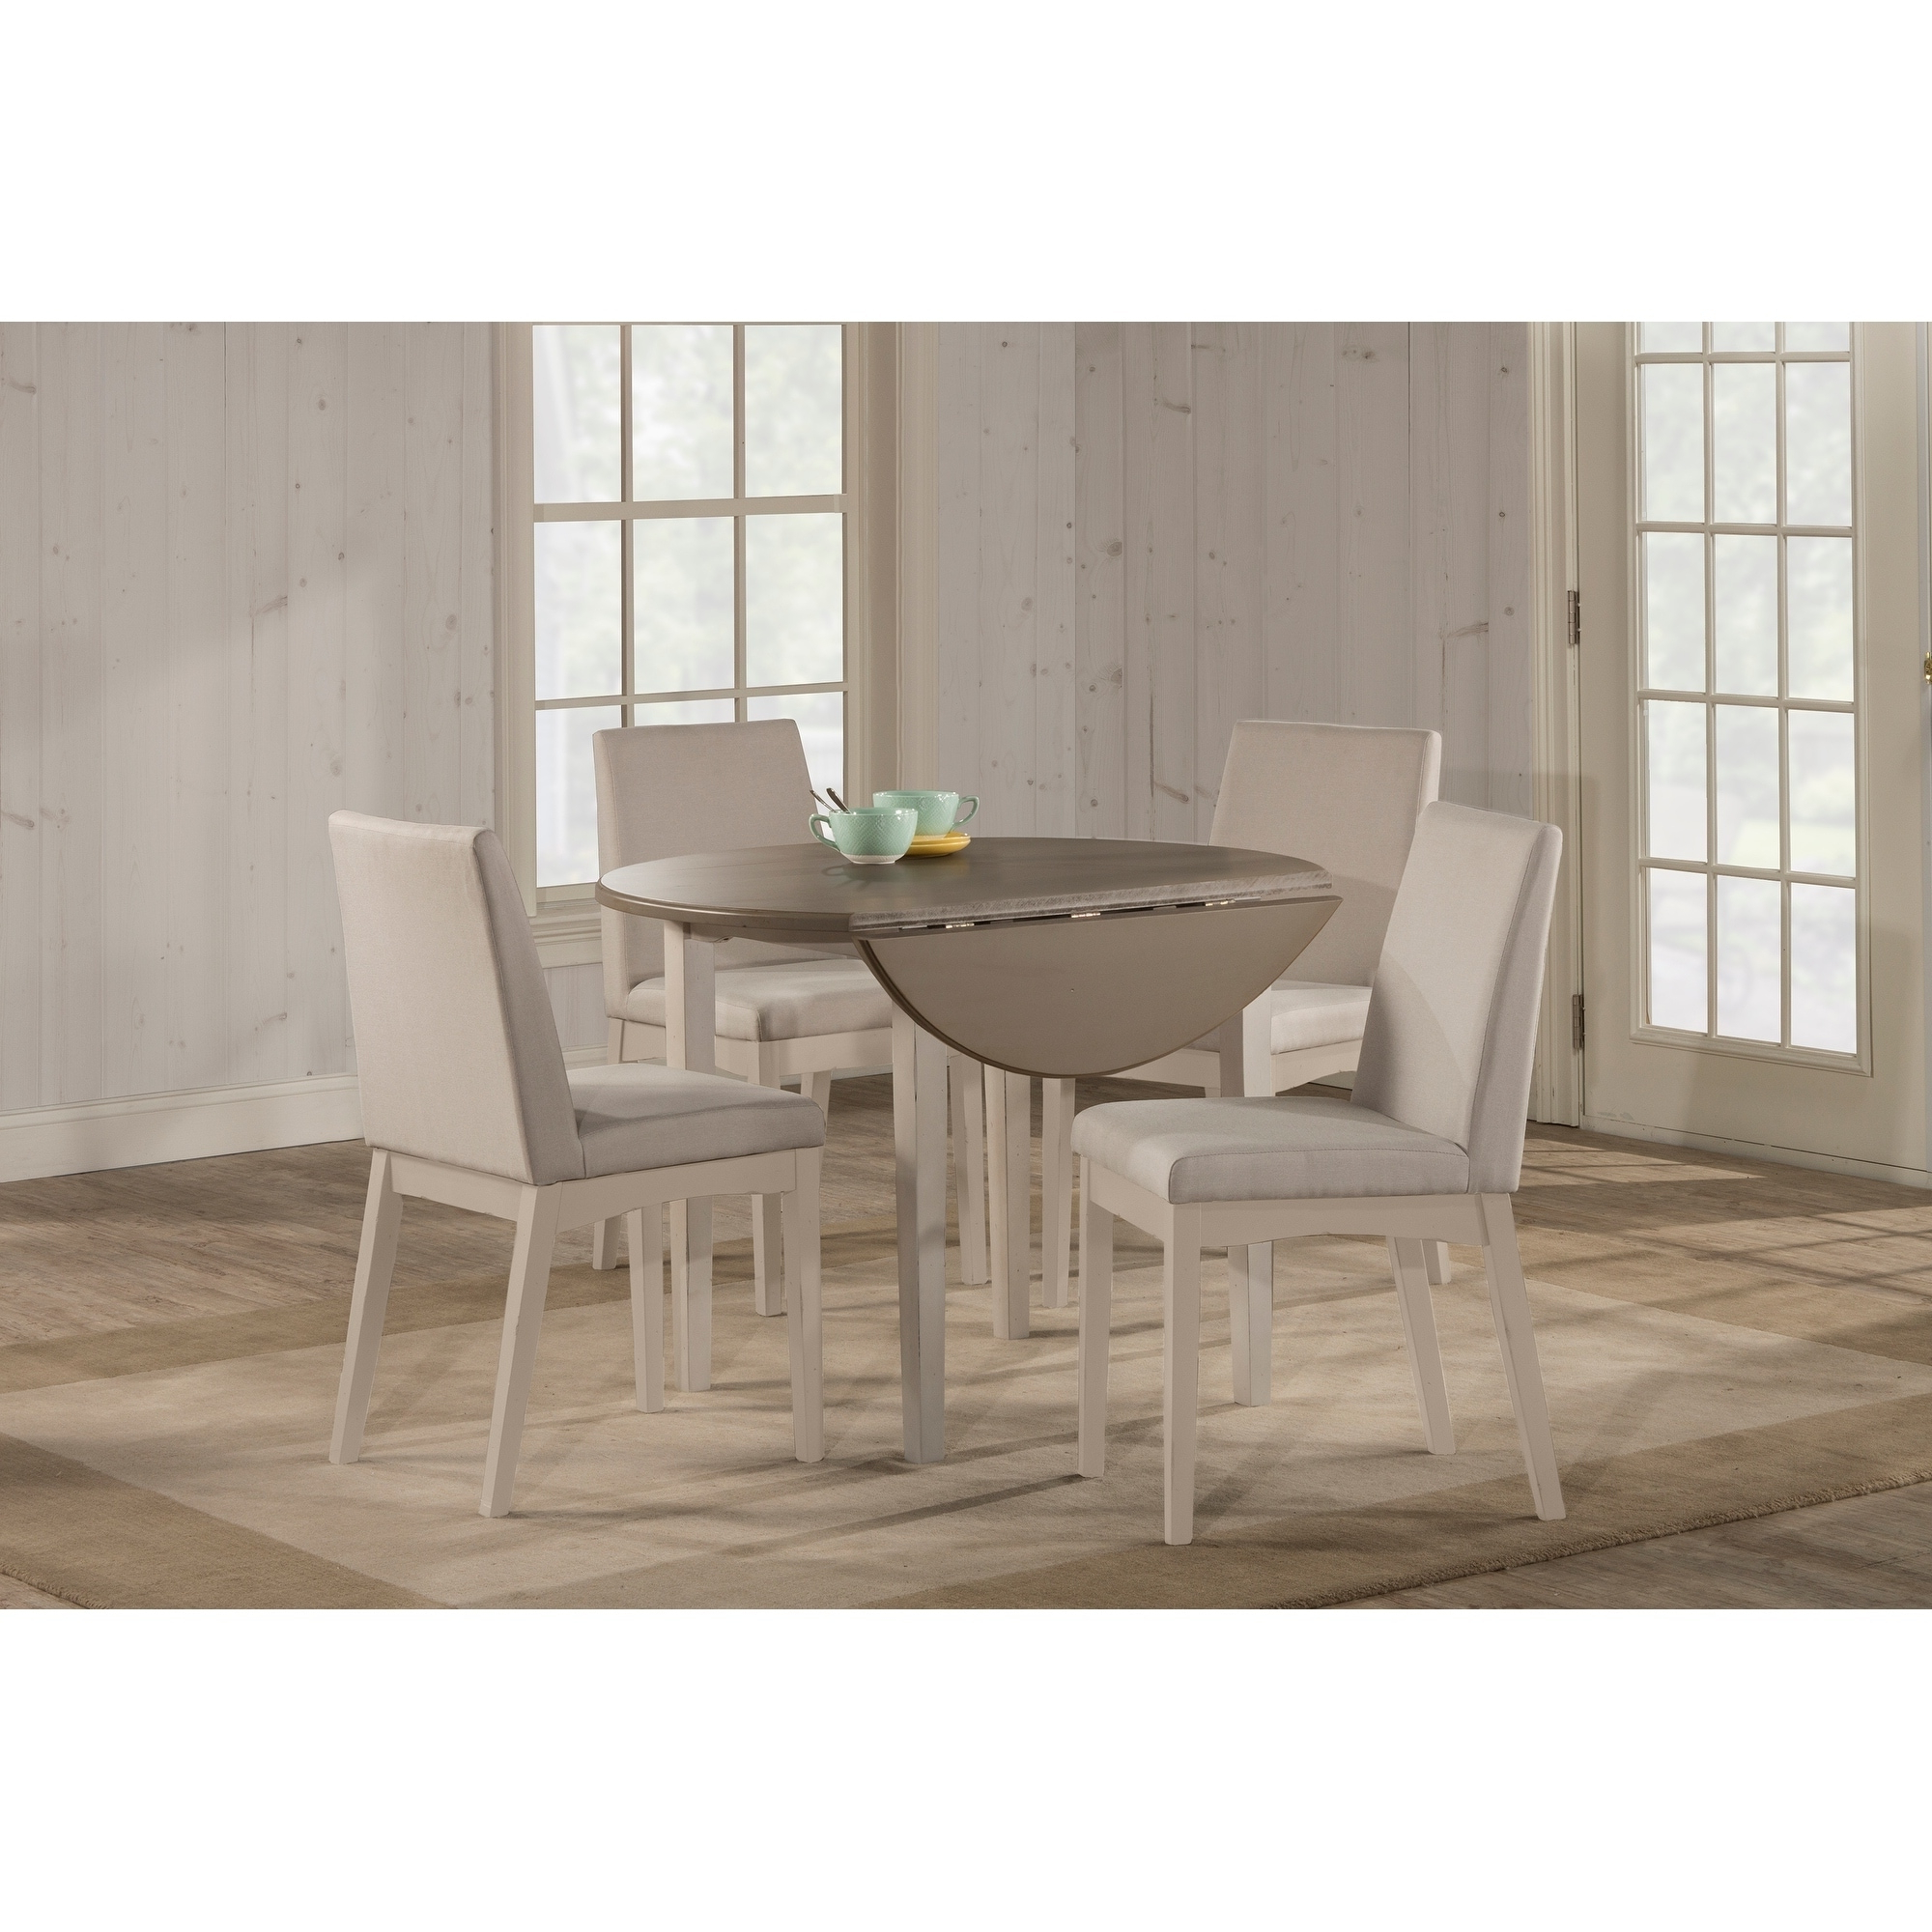 Hillsdale Furniture Clarion Five (5) Piece Round Drop Leaf Within Most Recent Transitional 4 Seating Drop Leaf Casual Dining Tables (View 10 of 25)